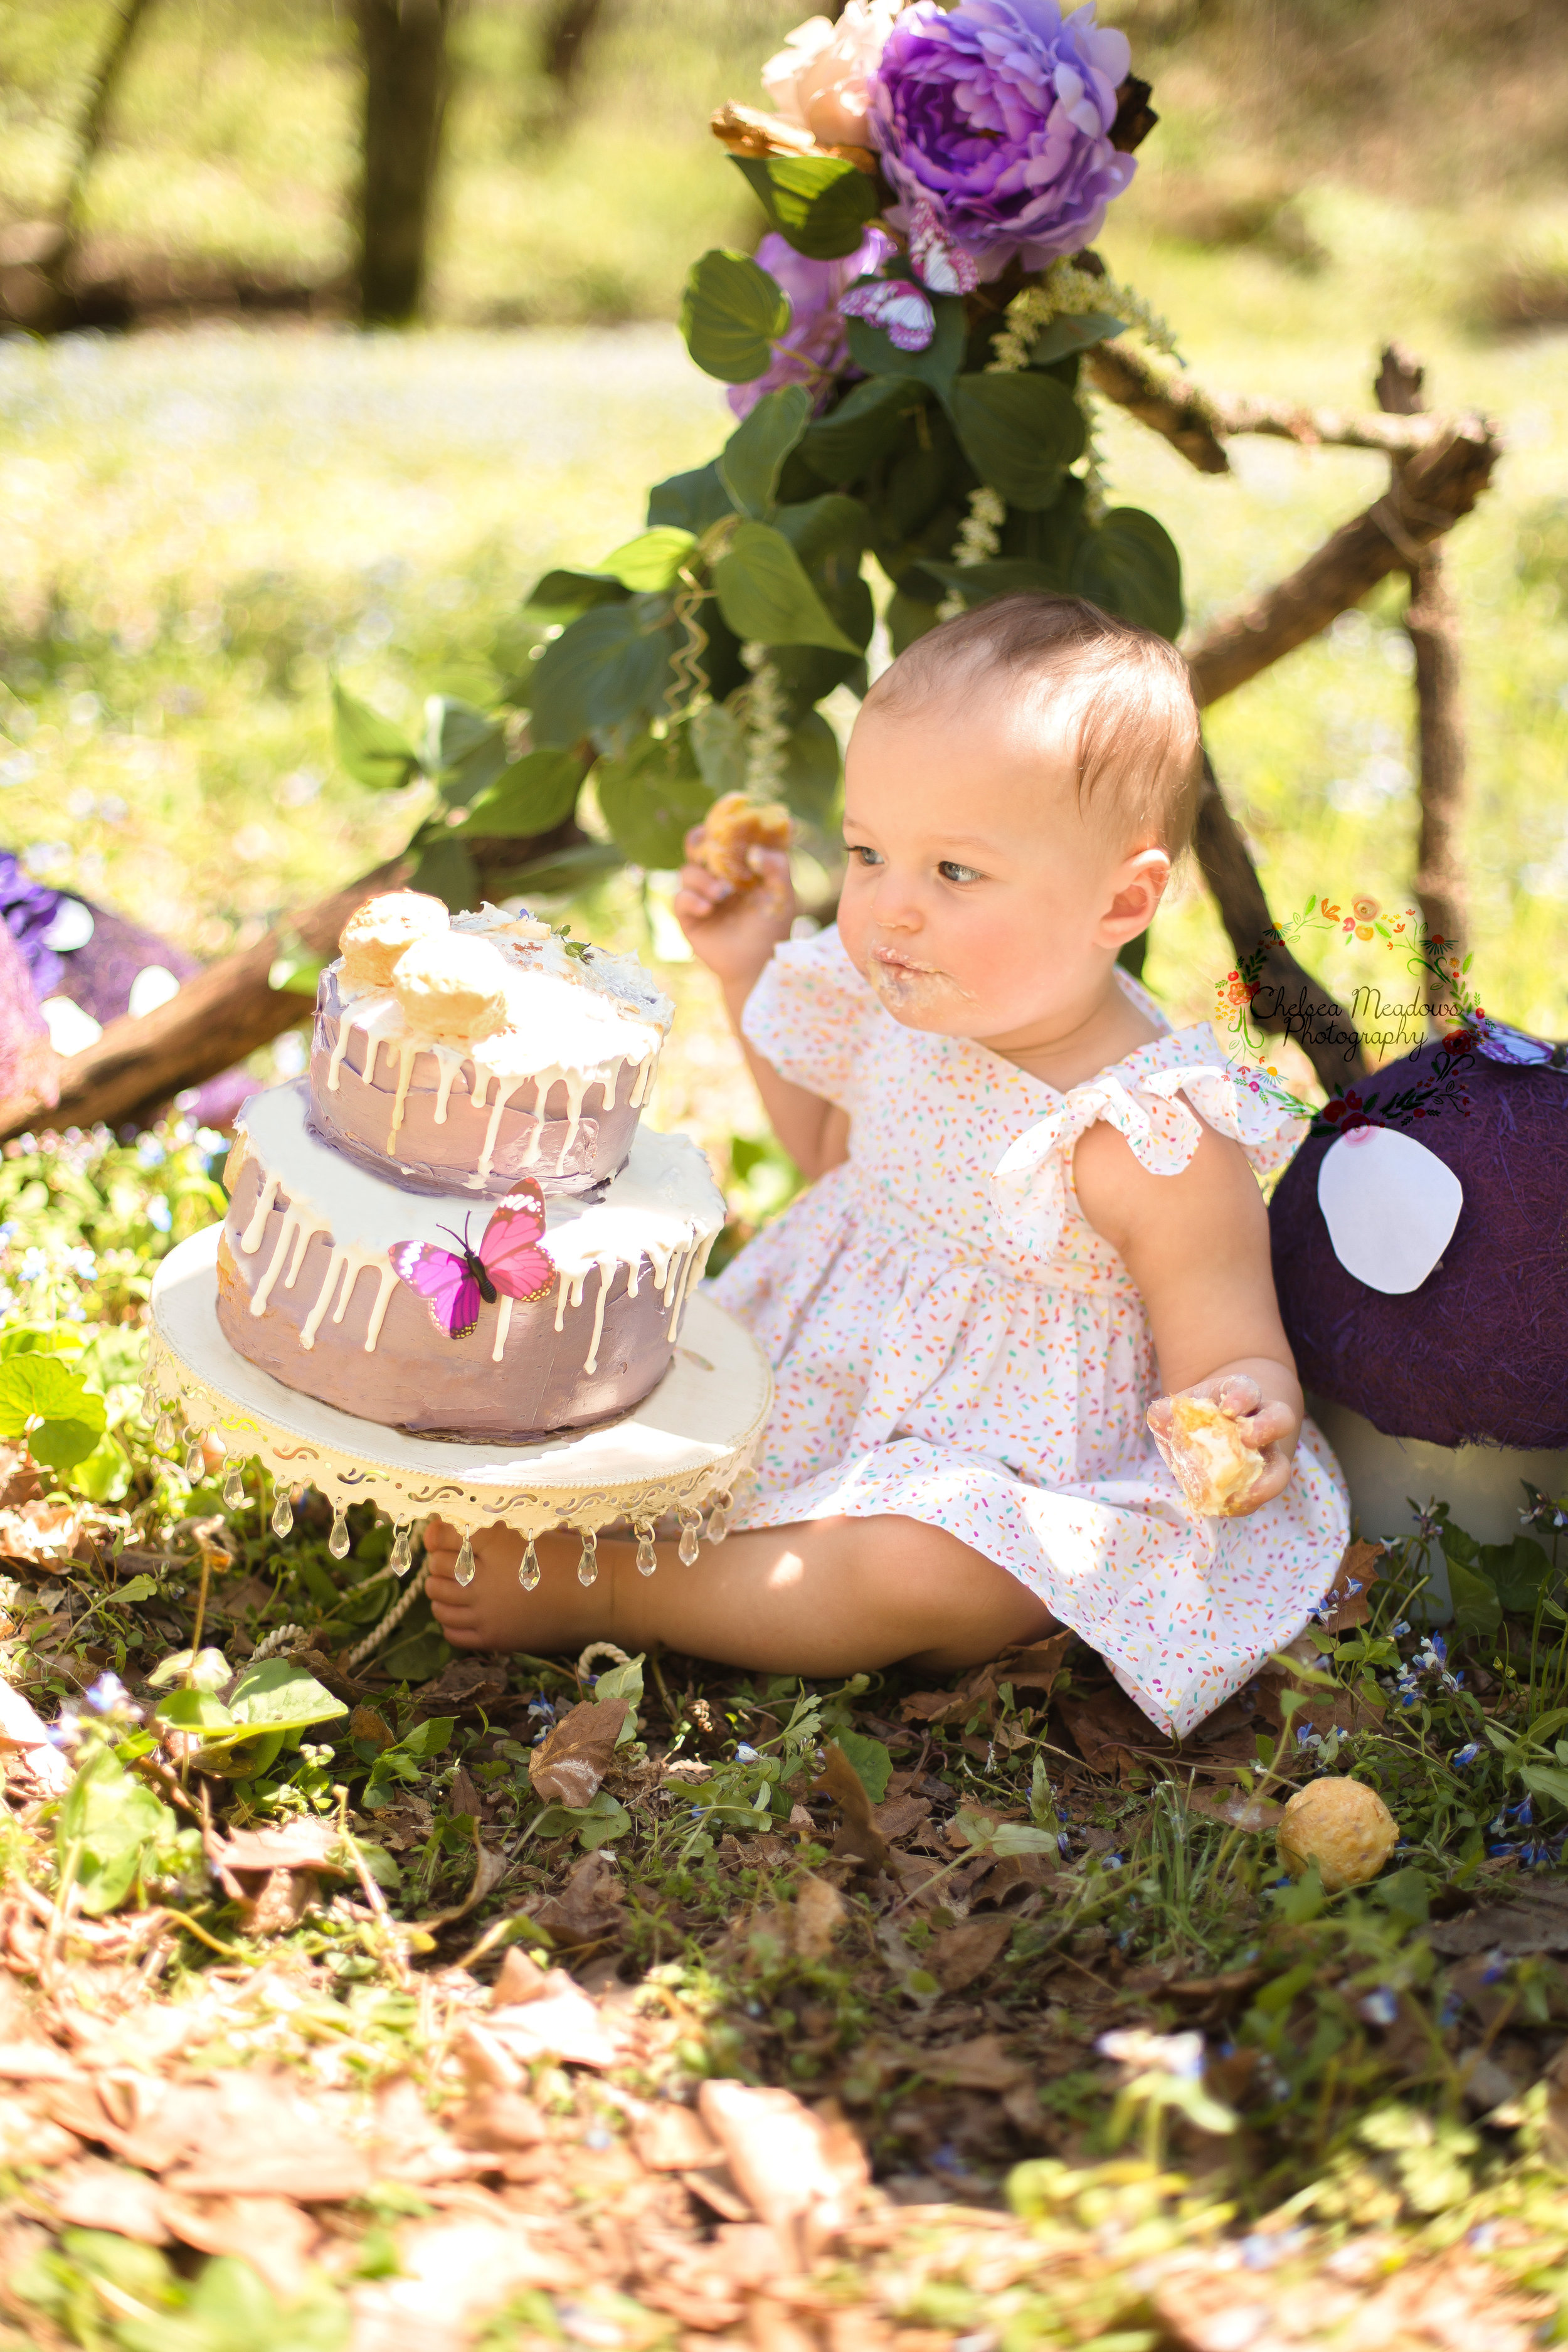 Ivy Cake Smash - Nashville Family Photographer - Chelsea Meadows Photography (38).jpg